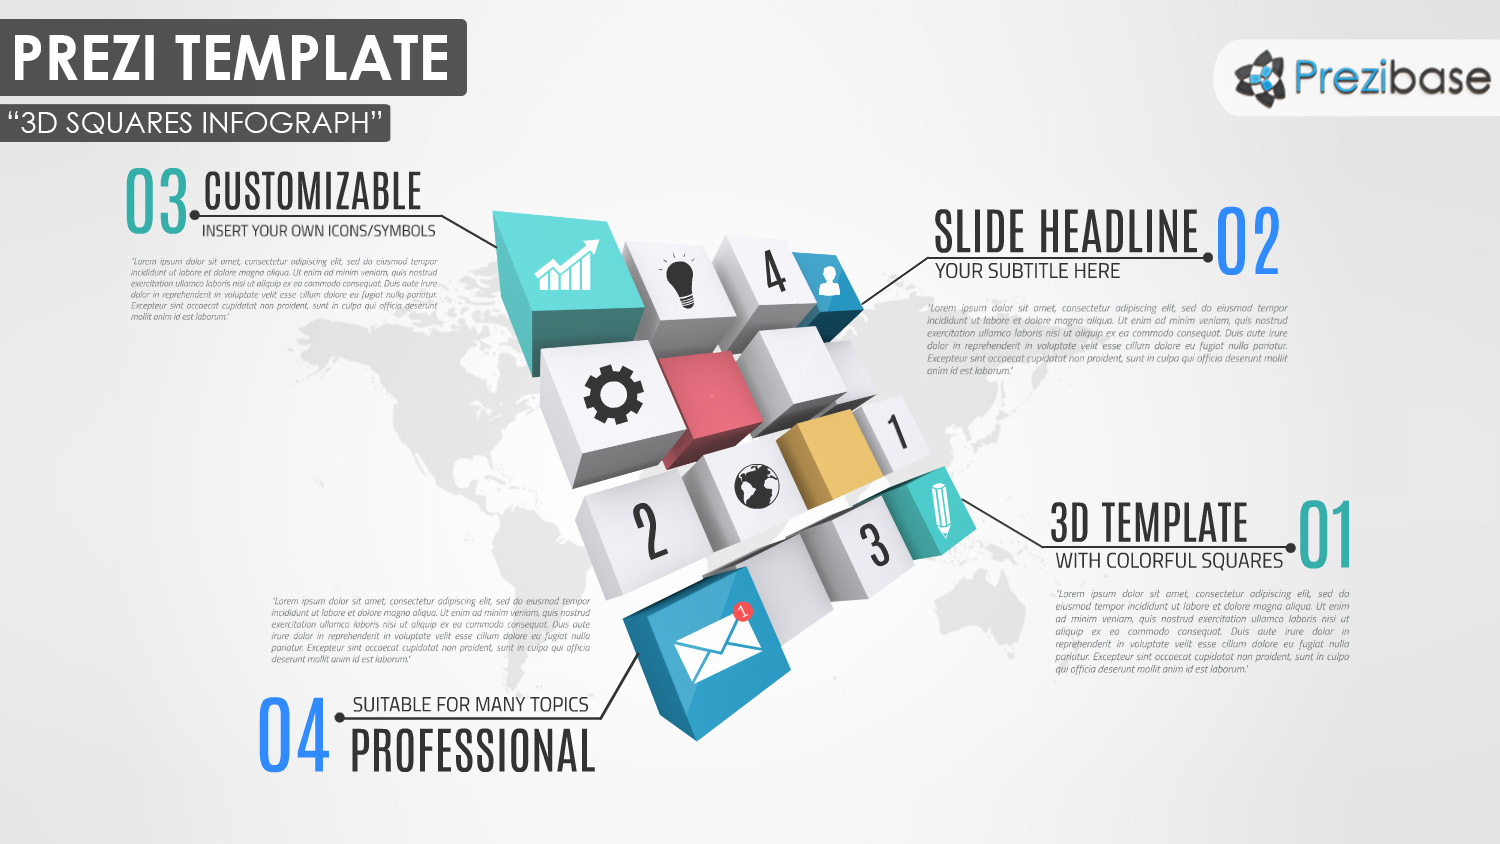 creative 3D cubes infographic buiness diagram corporate and professional prezi template